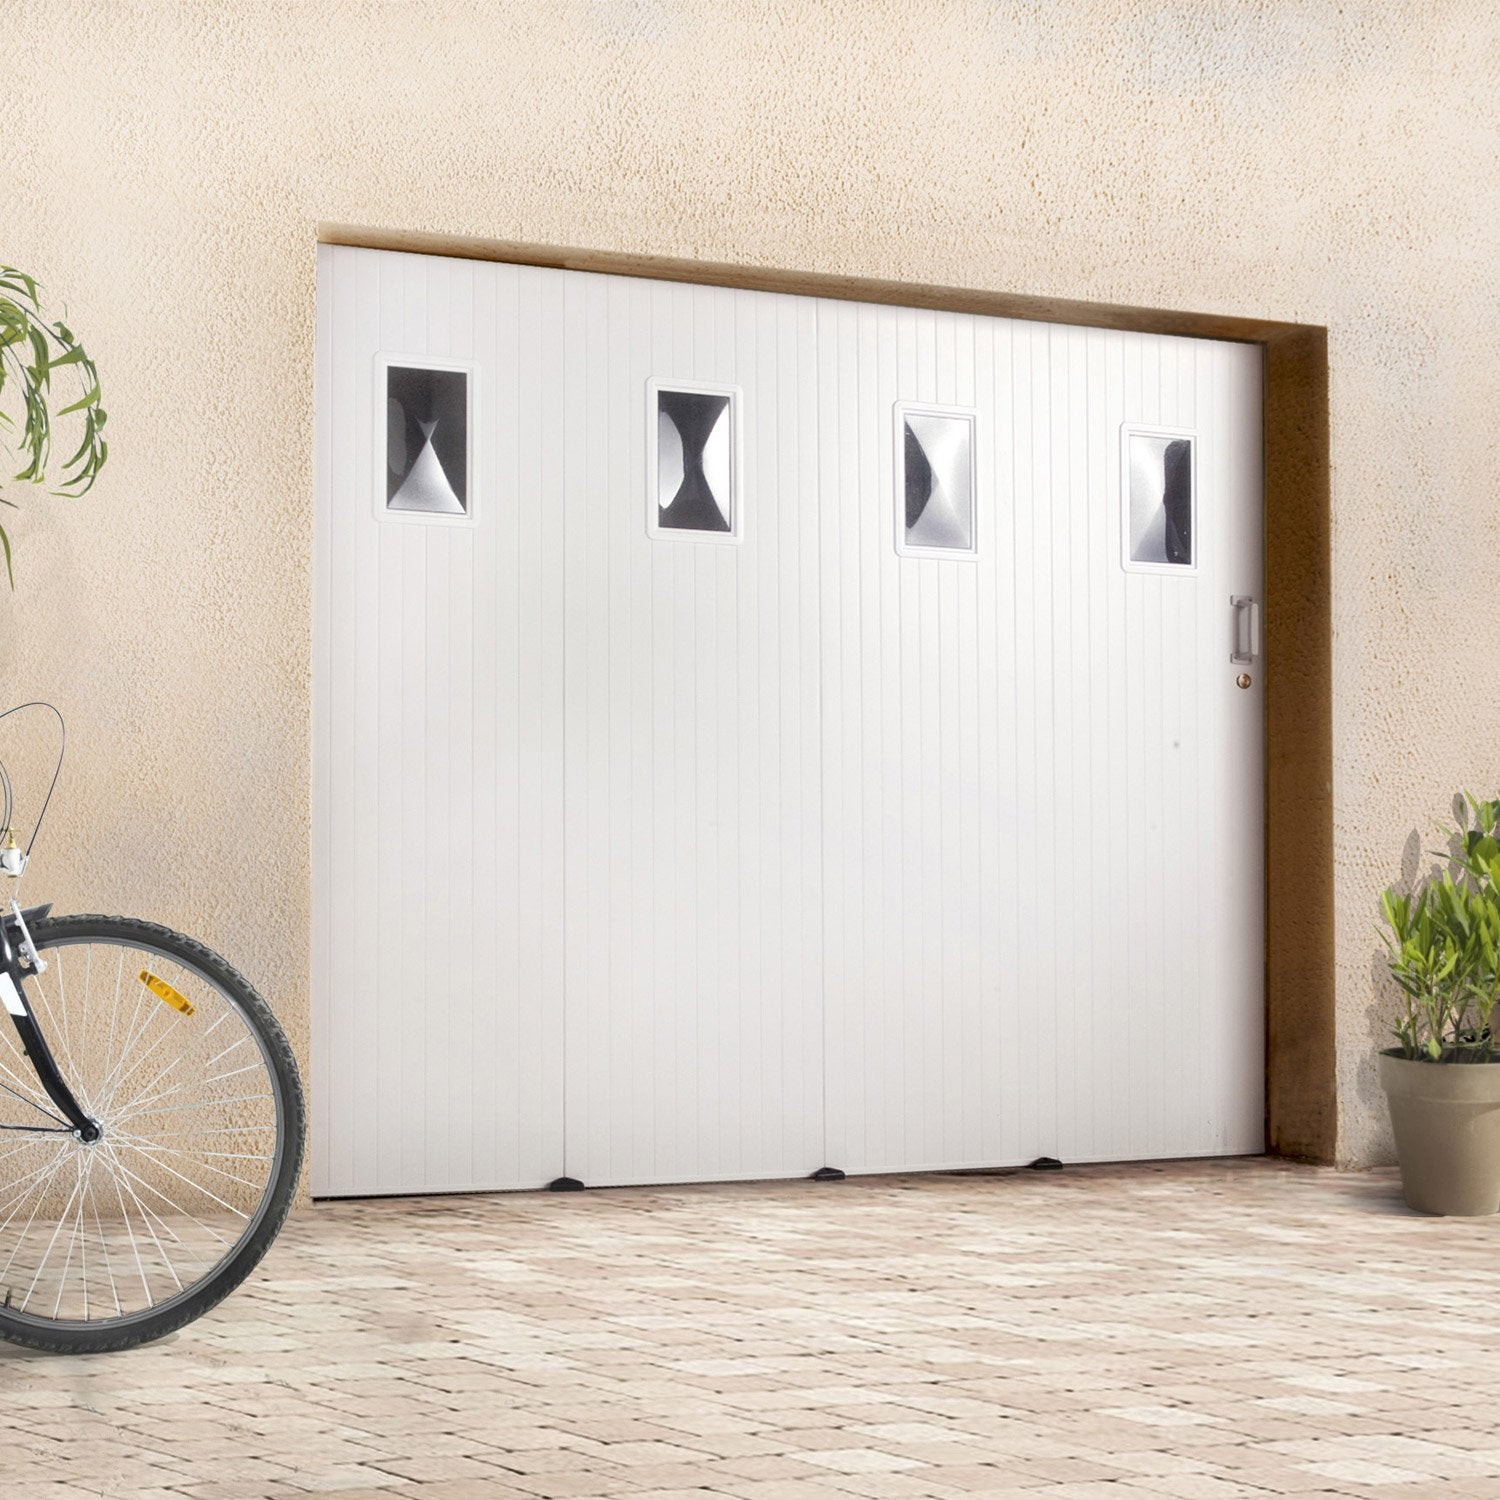 Pose d 39 une porte de garage coulissante leroy merlin for Poser une porte de garage sectionnelle